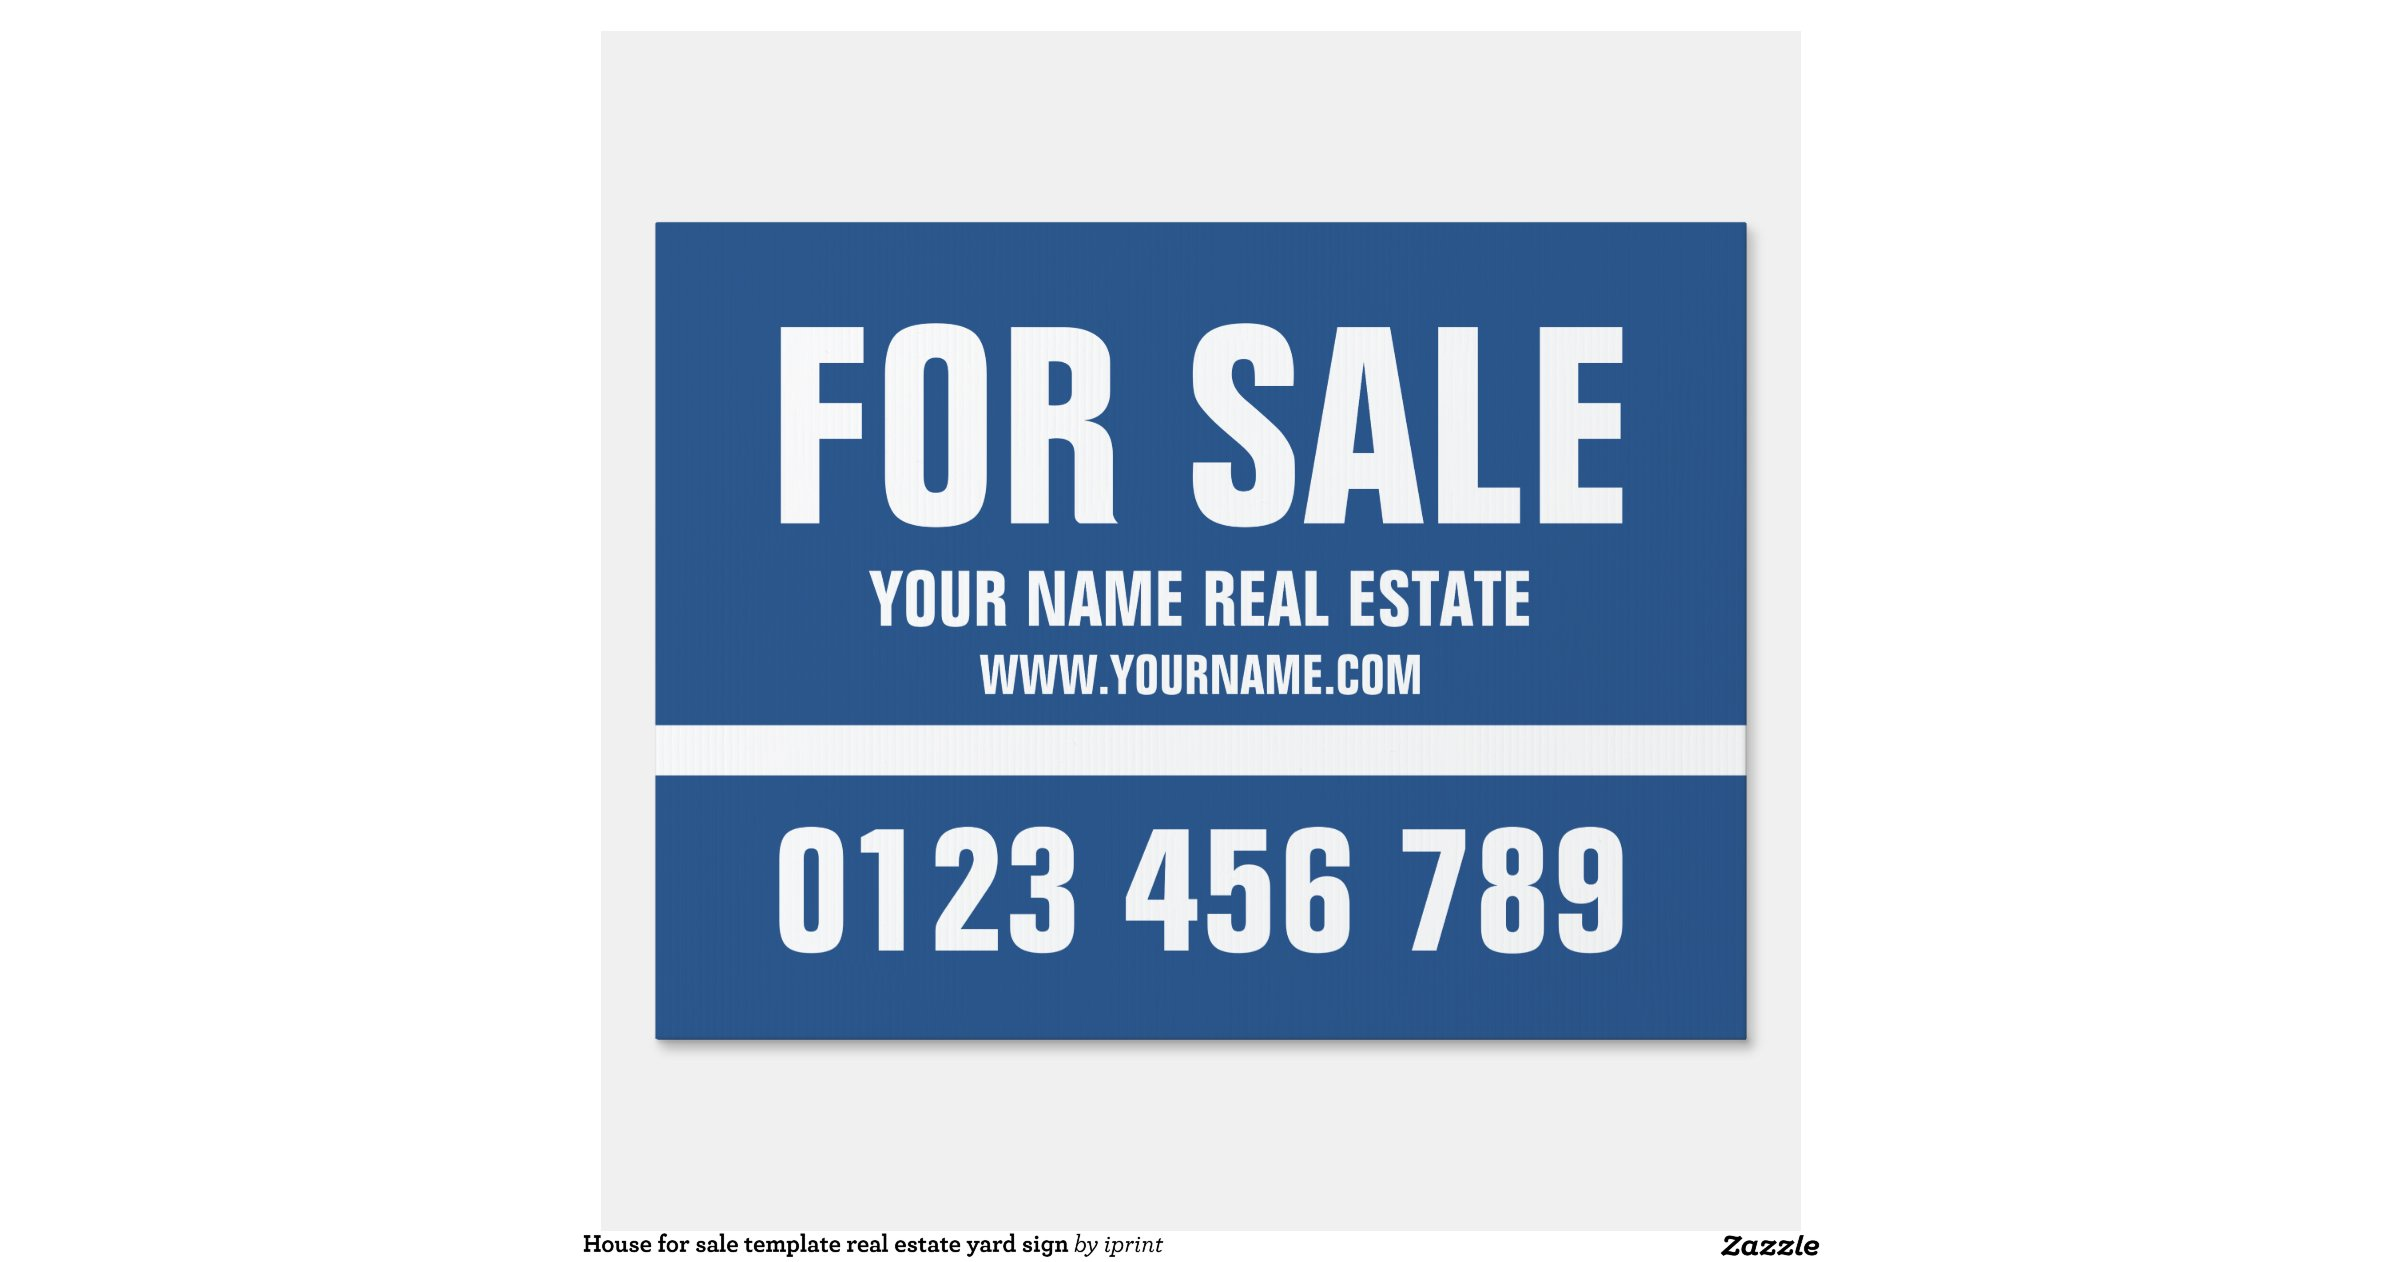 house for sale template real estate yard sign zazzle